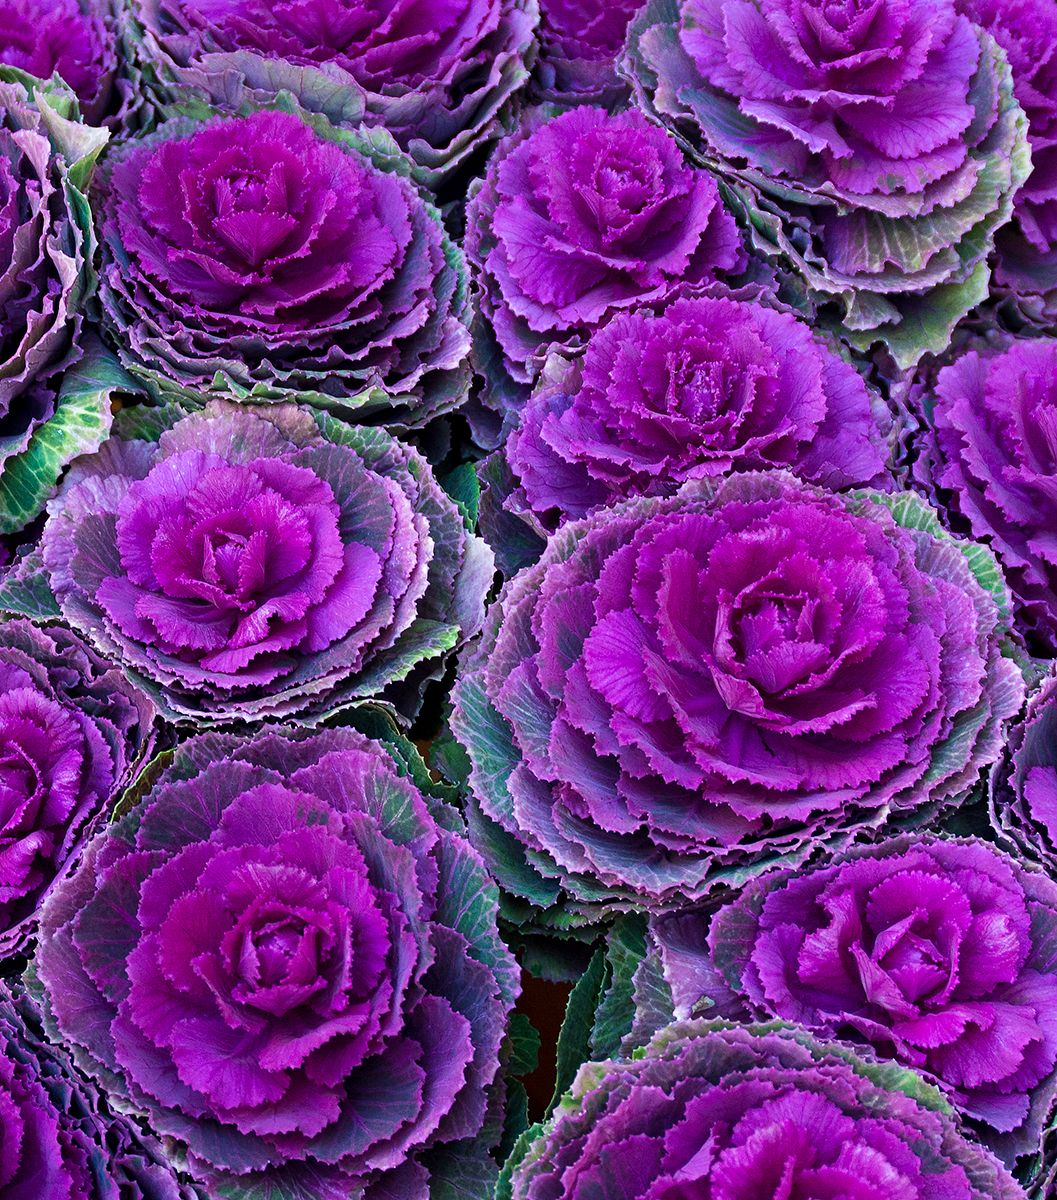 Amsterdam market with purple kale